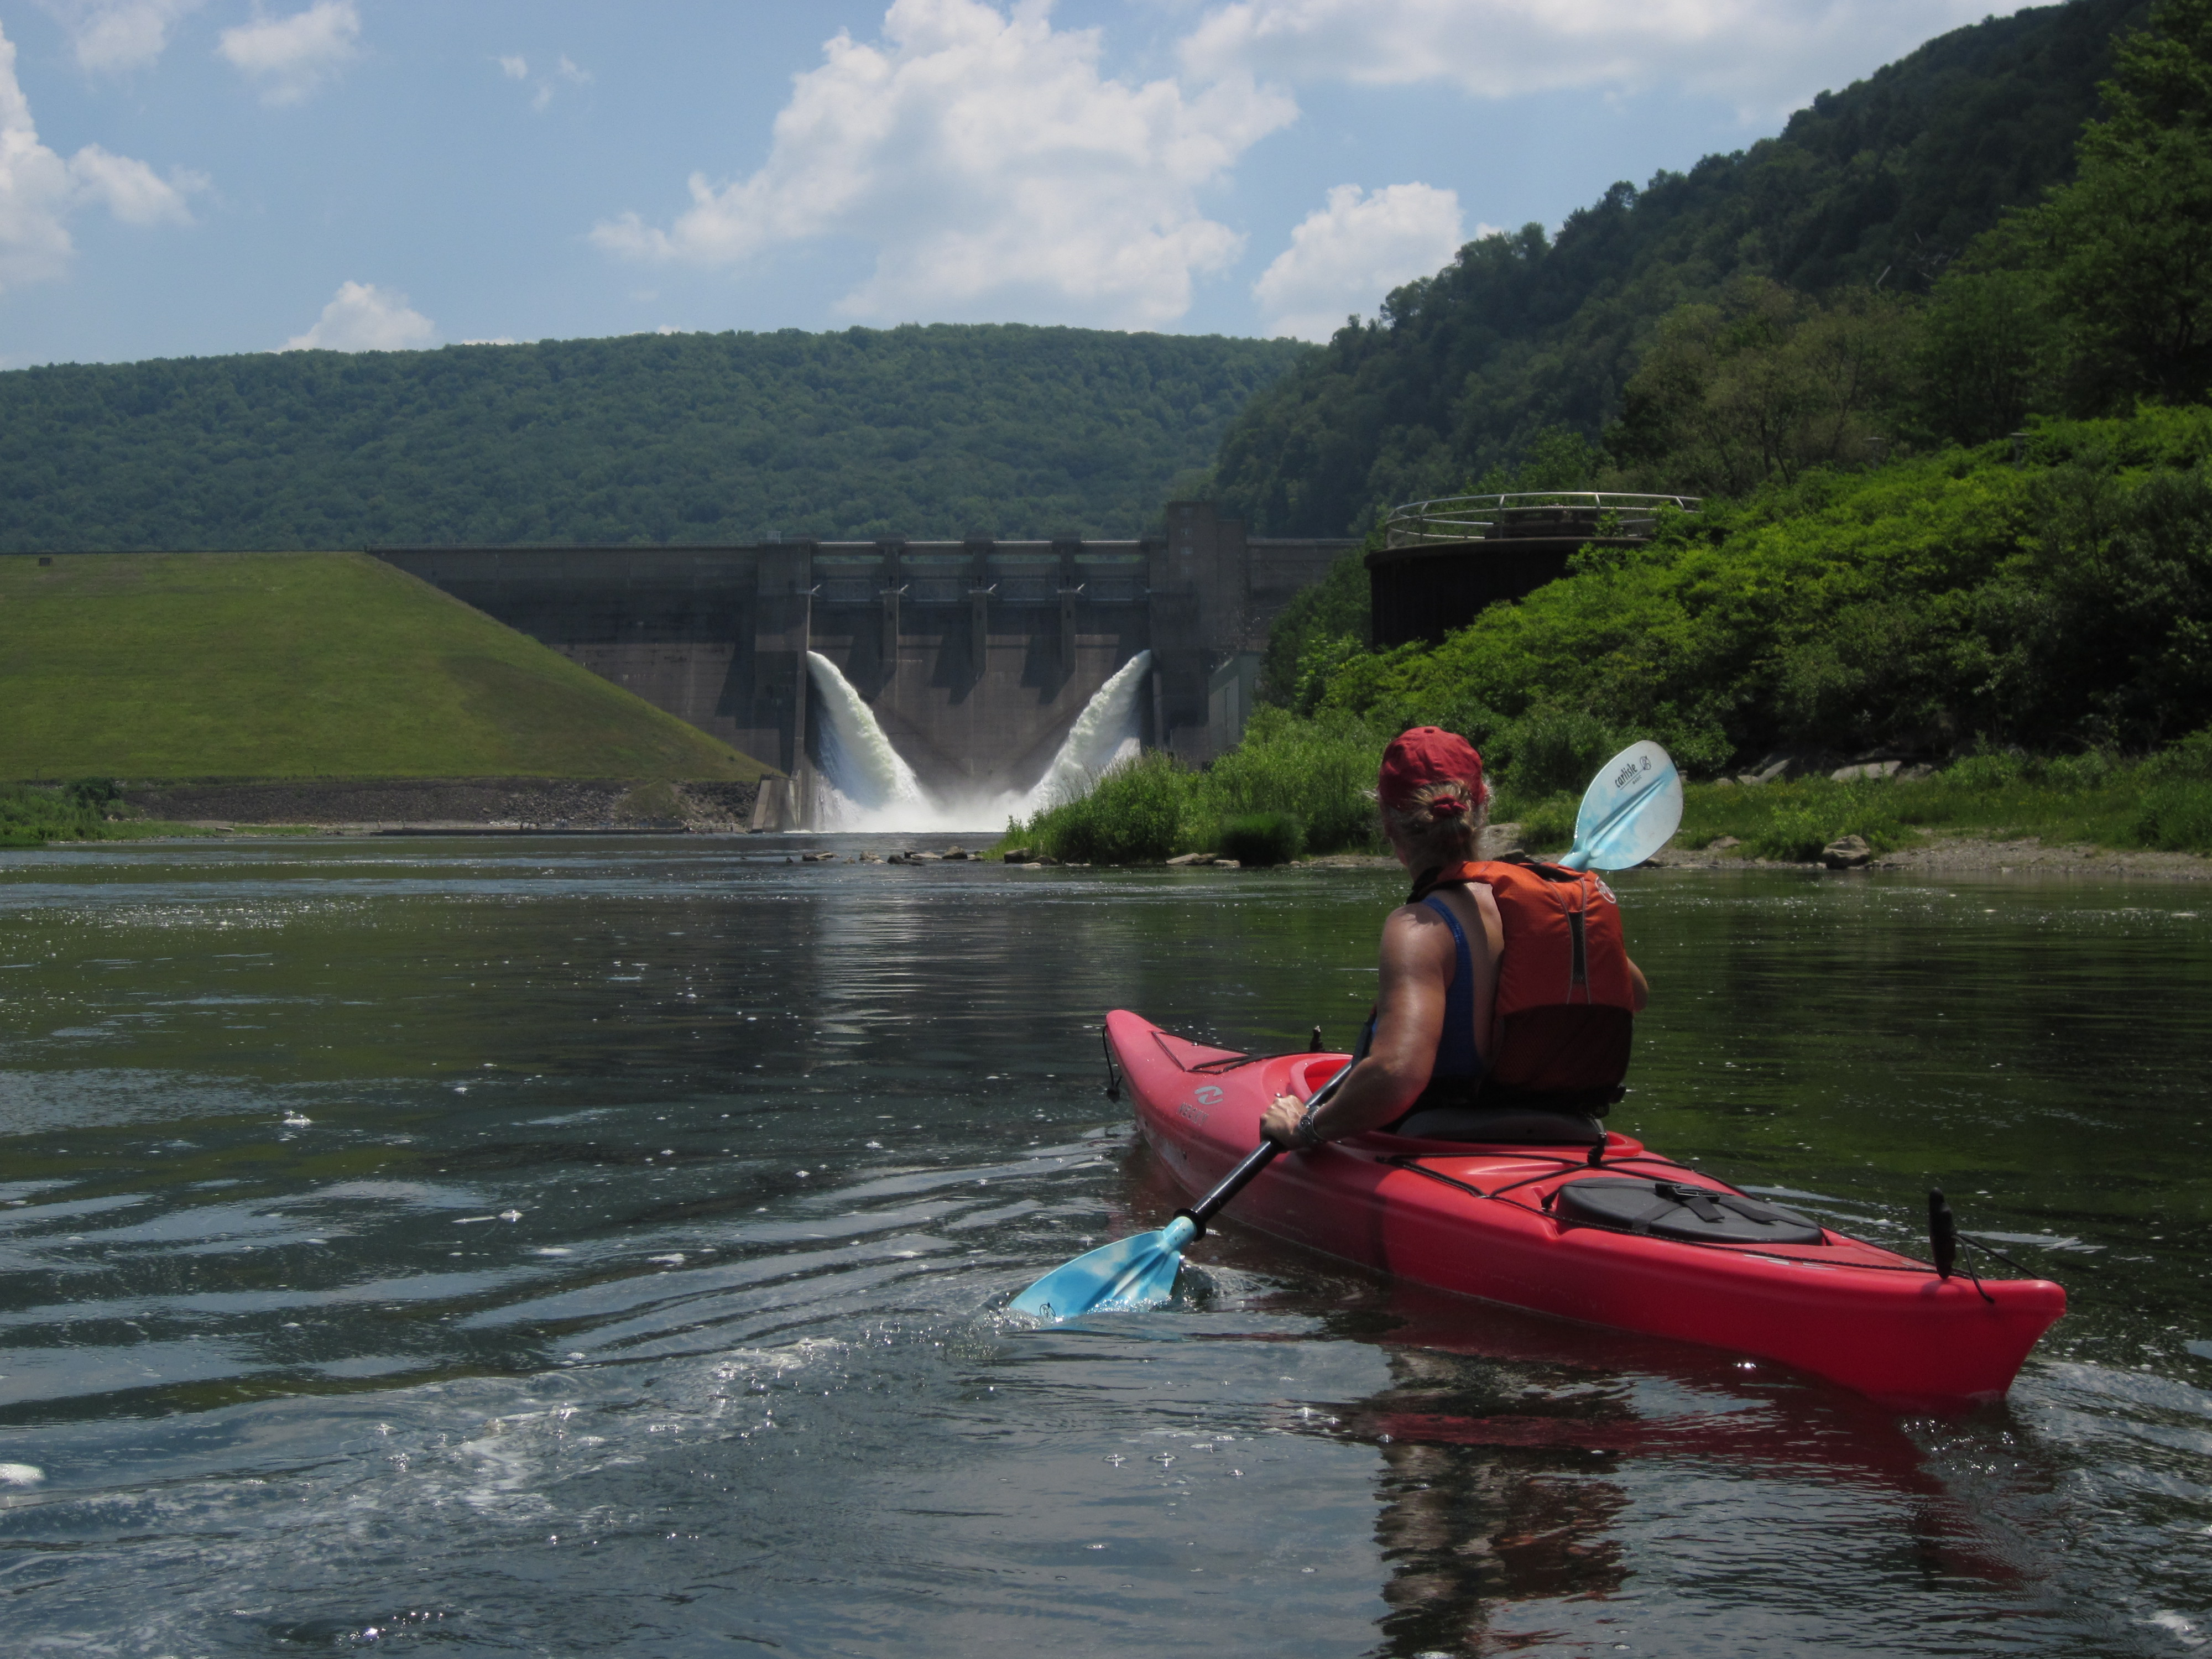 ADVENTURE IN THE OLD GROWTH- The Allegheny National Forest